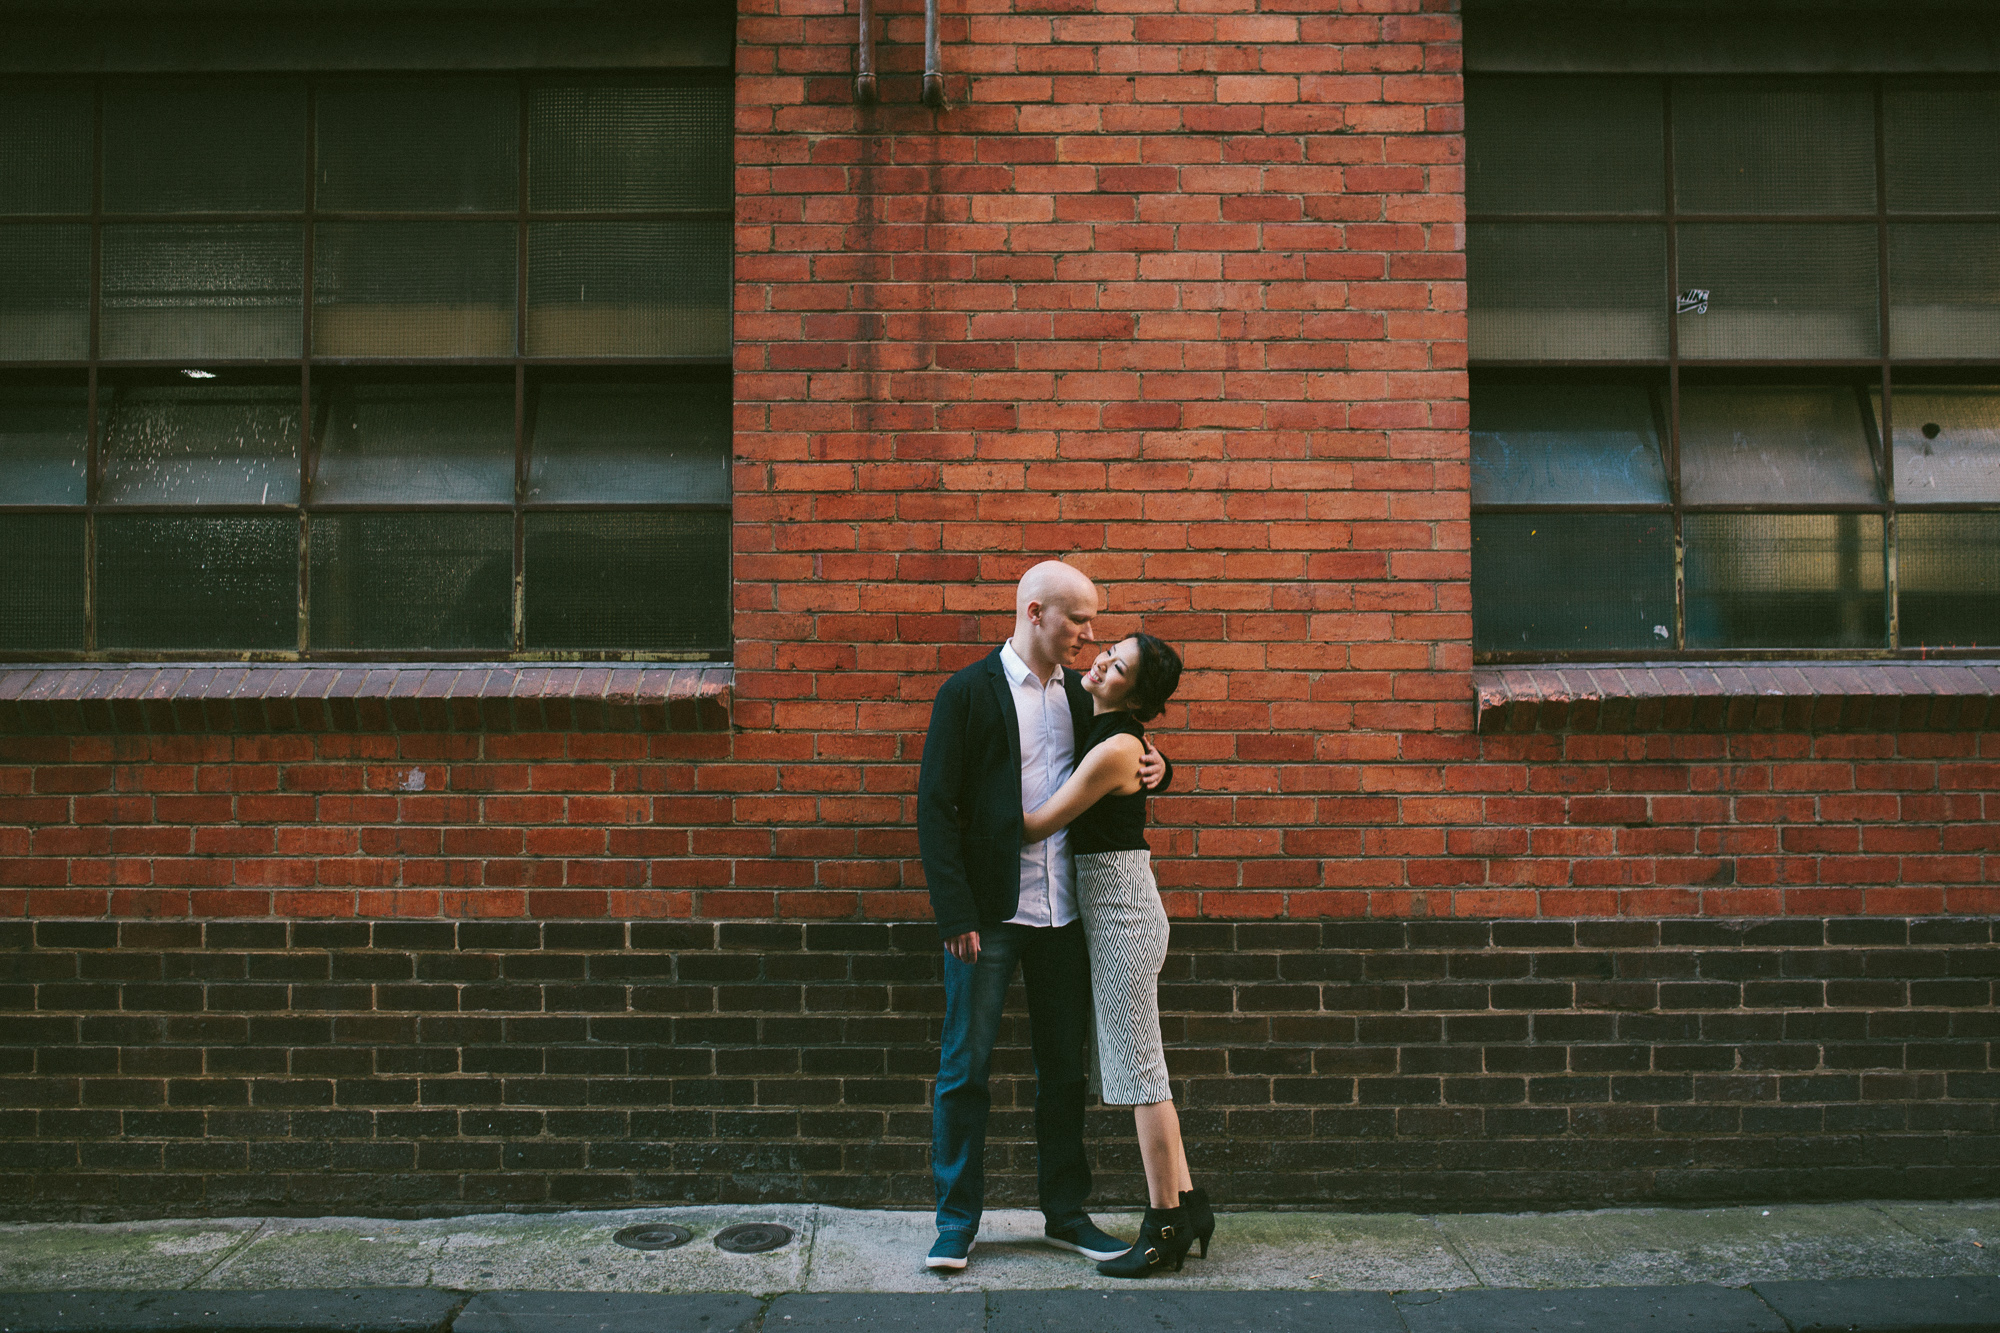 Elaine-Stephen-Engagement-Melbourne-Quirky-Urban-Engagement-Session-Wedding-Photography-1